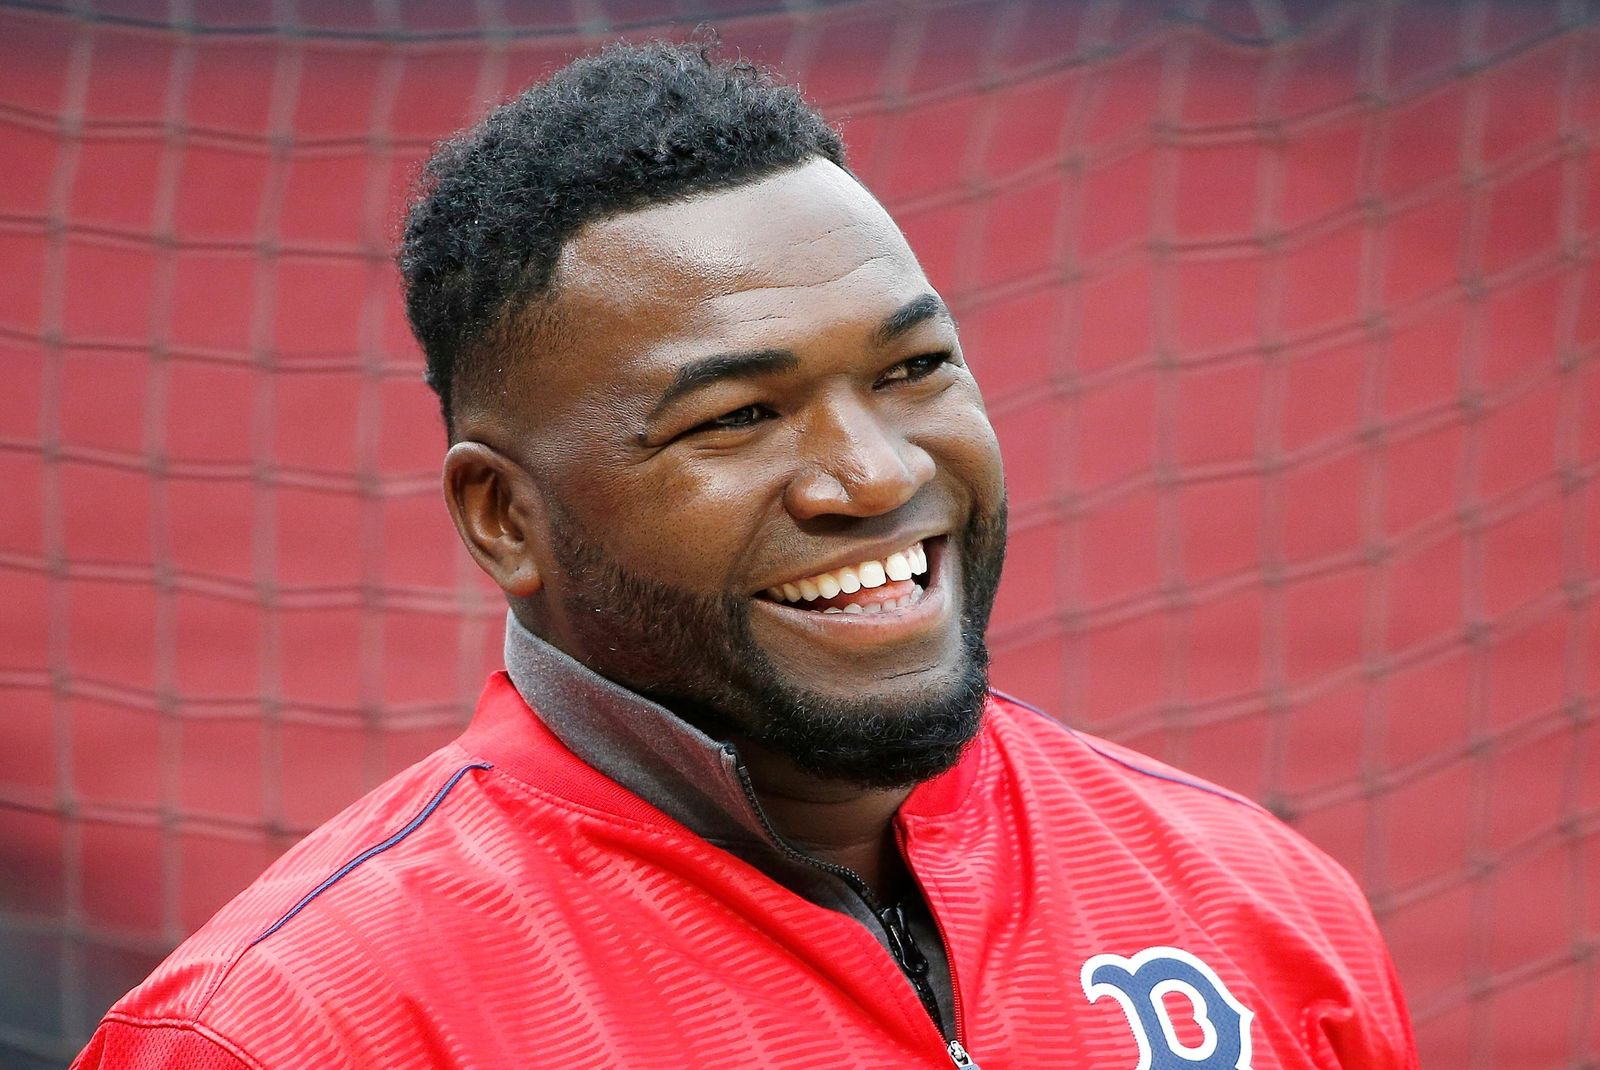 FILE - In this April 12, 2016, file photo, Boston Red Sox's David Ortiz smiles during batting practice before a baseball game against the Baltimore Orioles, in Boston. Former Boston Red Sox slugger David Ortiz was hospitalized Monday following surgery for a gunshot wound after being ambushed by a man in a bar in his native Dominican Republic, authorities said. (AP Photo/Michael Dwyer, File)